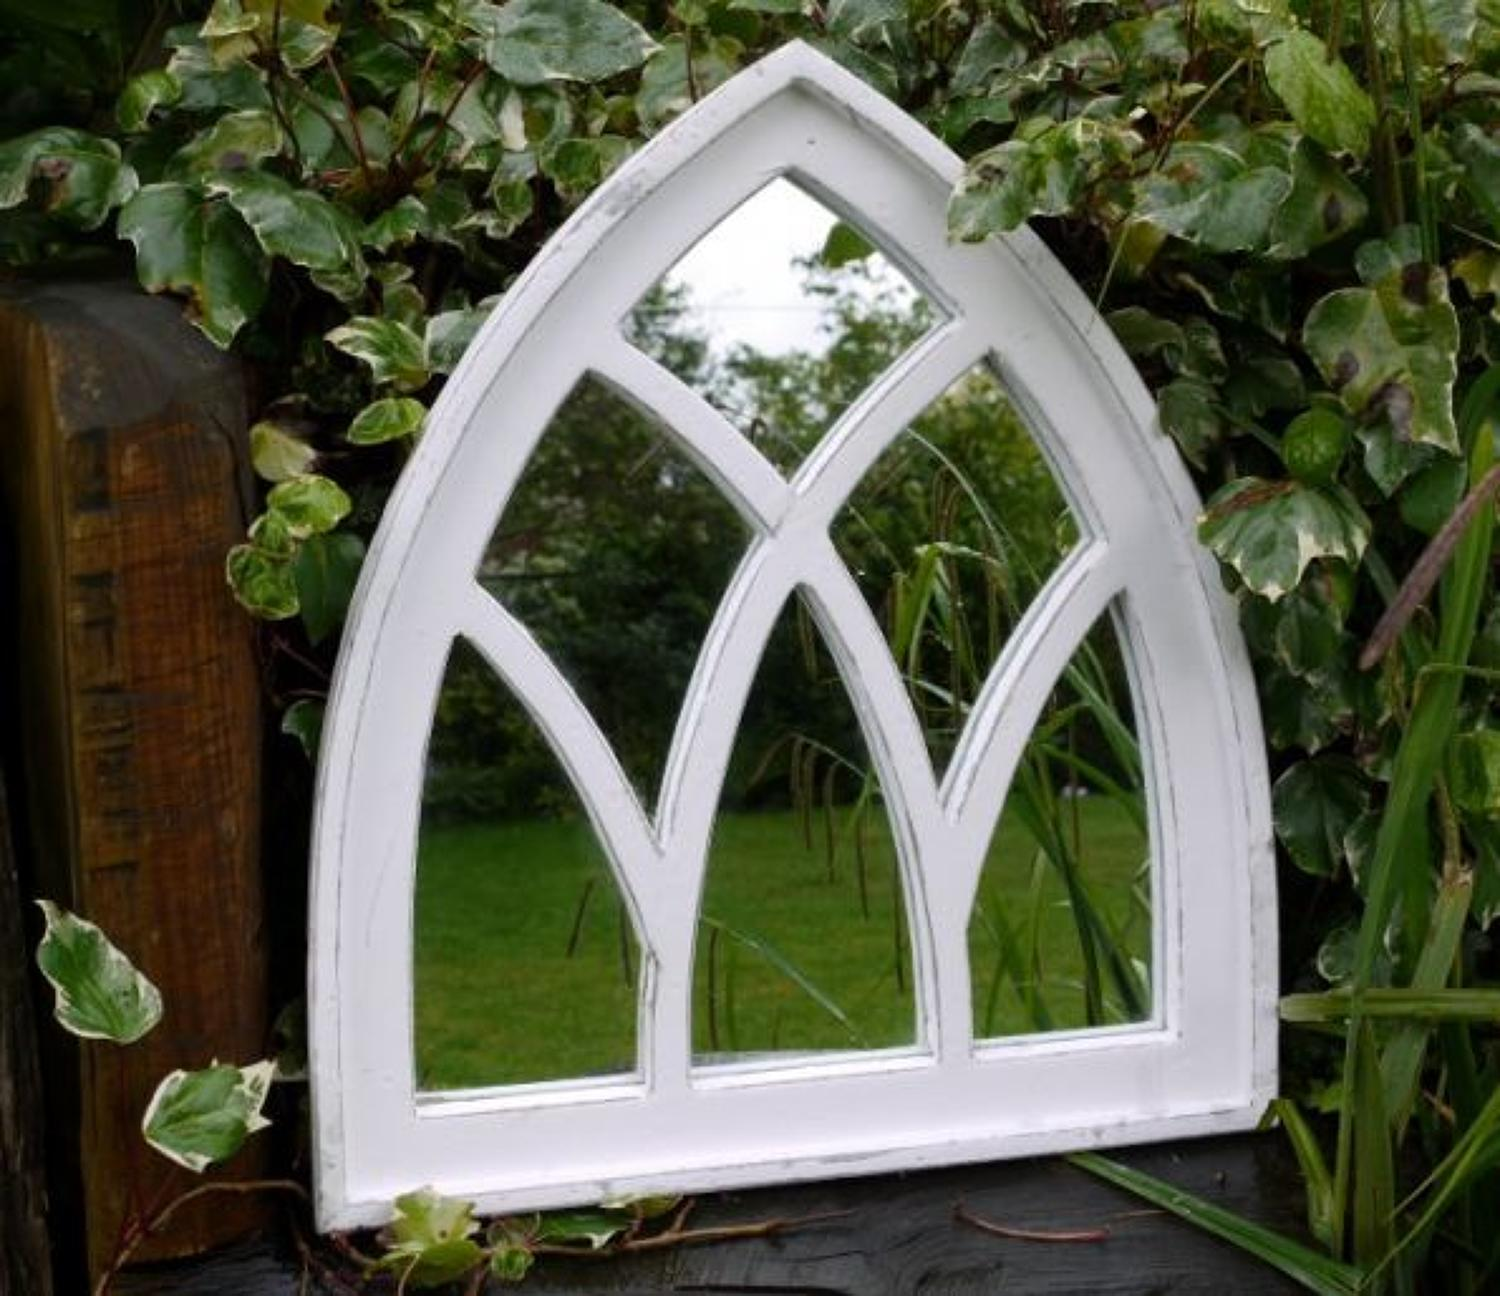 Garden arched window mirror